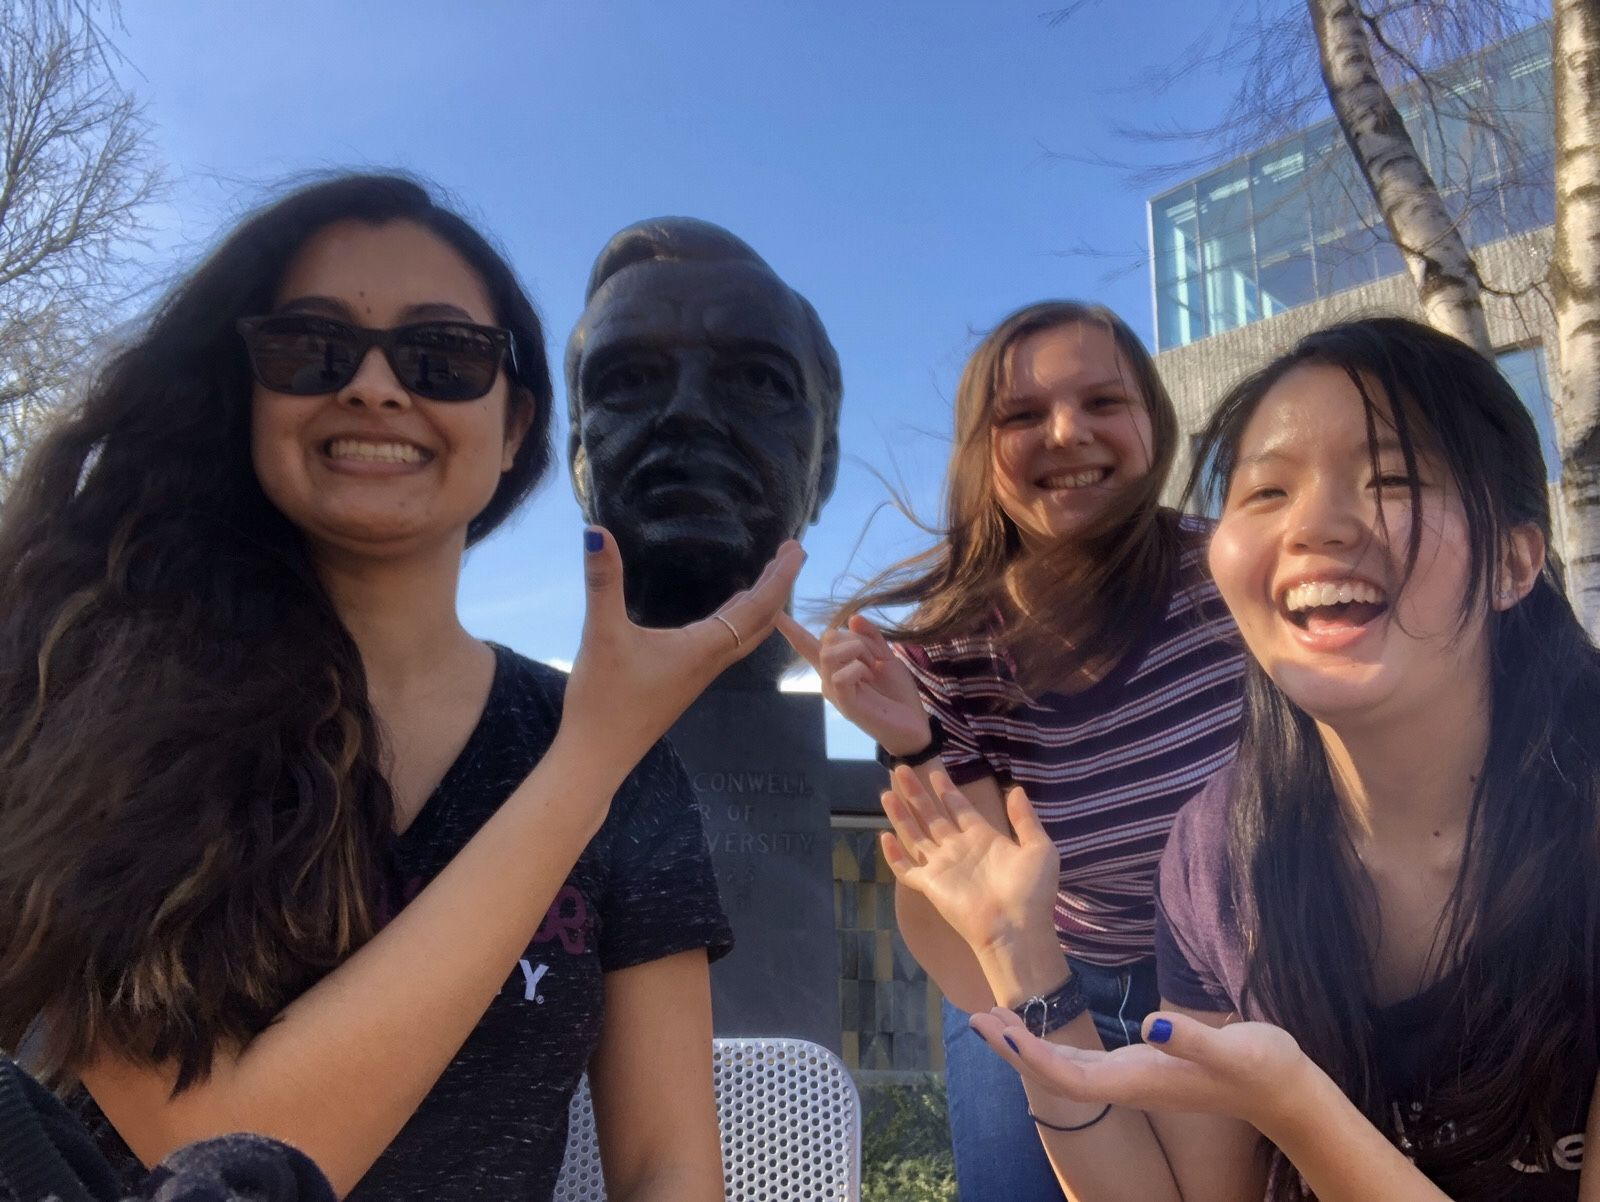 Students pose on campus with the Russell Conwell statue.